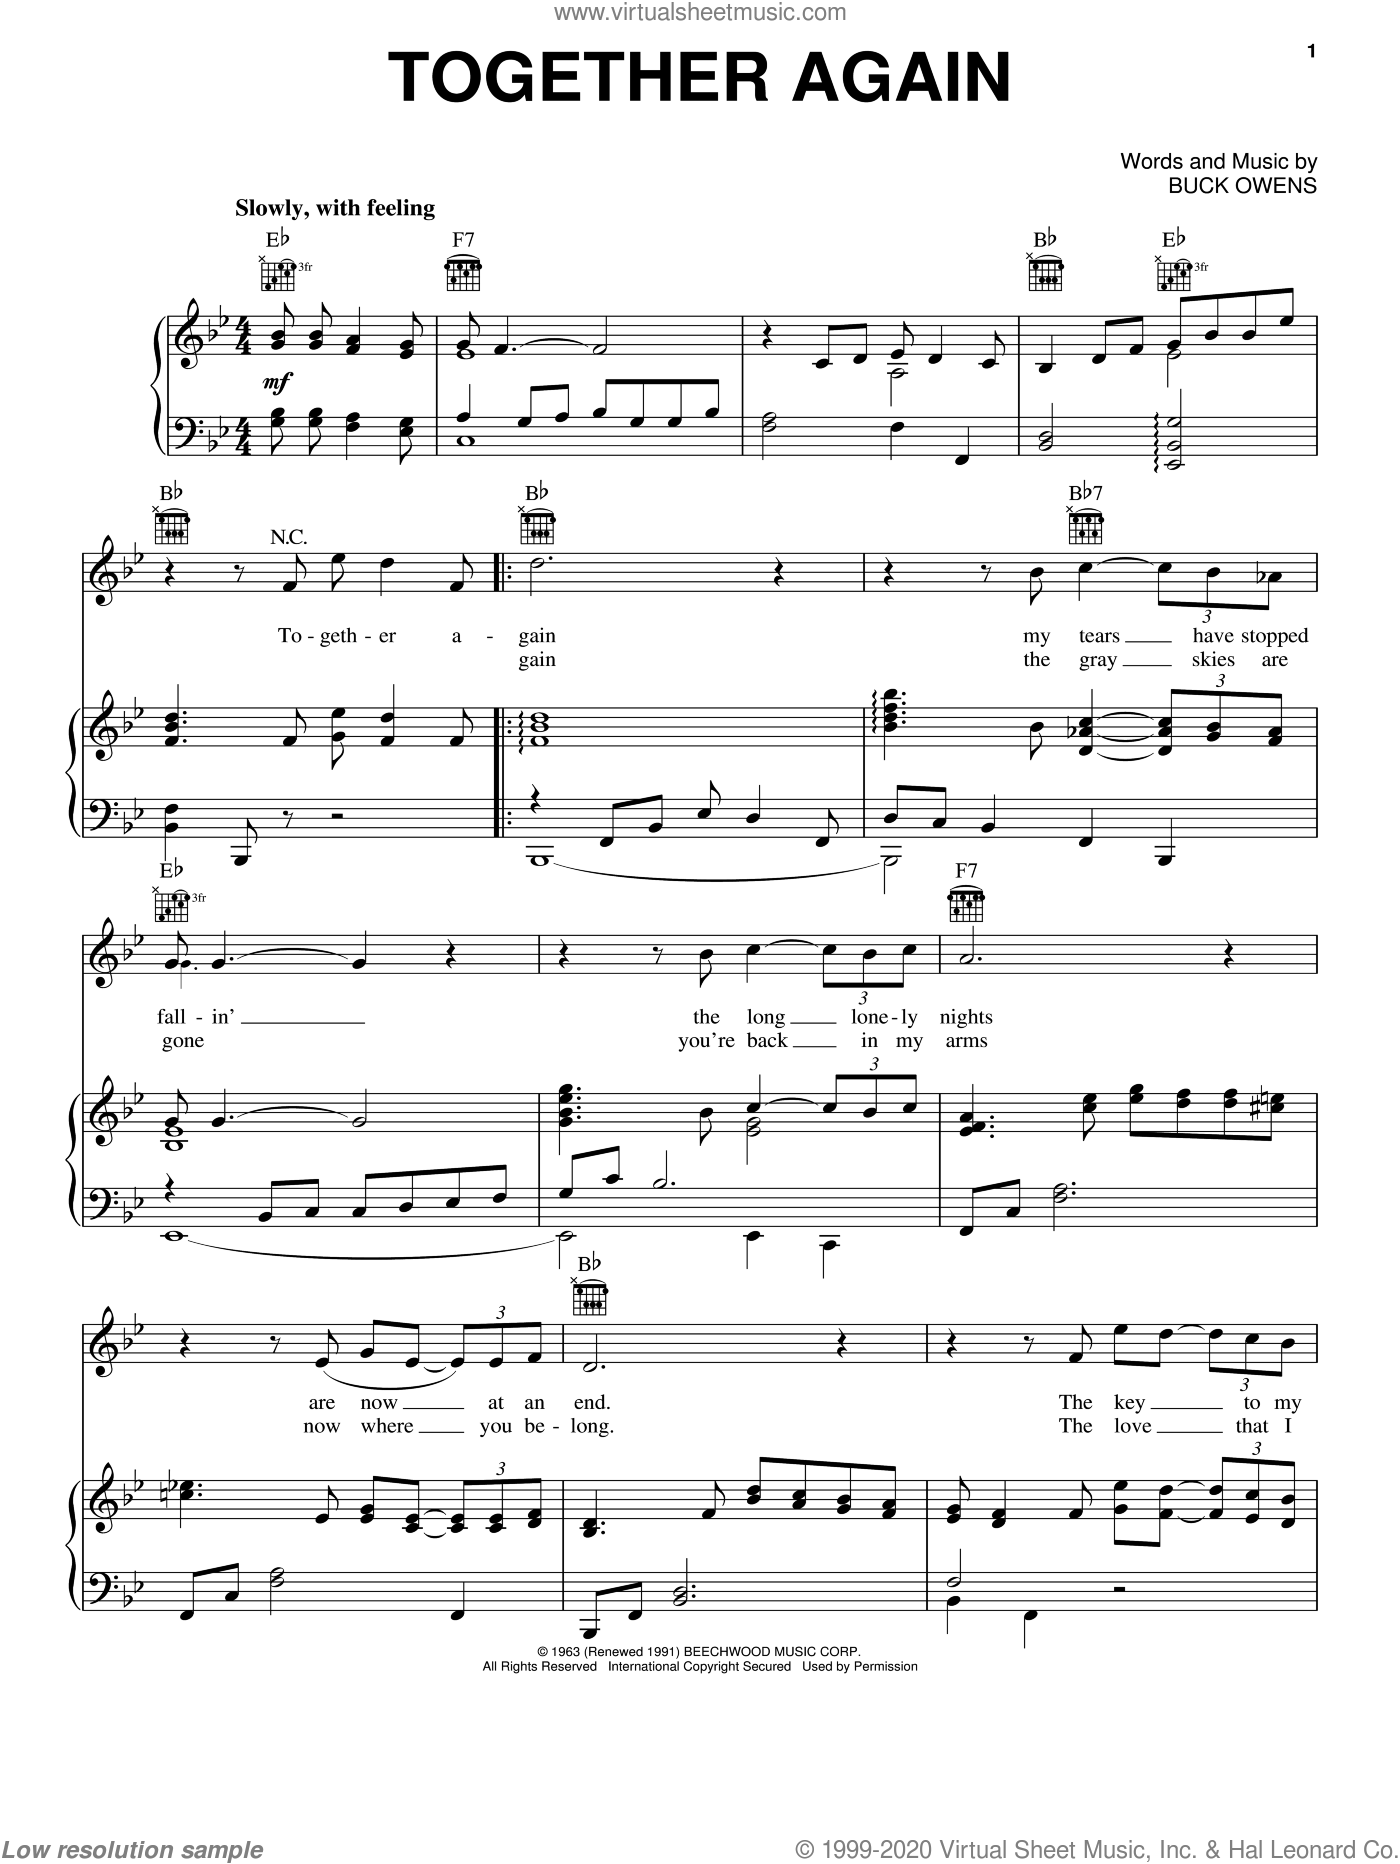 Together Again sheet music for voice, piano or guitar by Emmylou Harris and Buck Owens, intermediate skill level